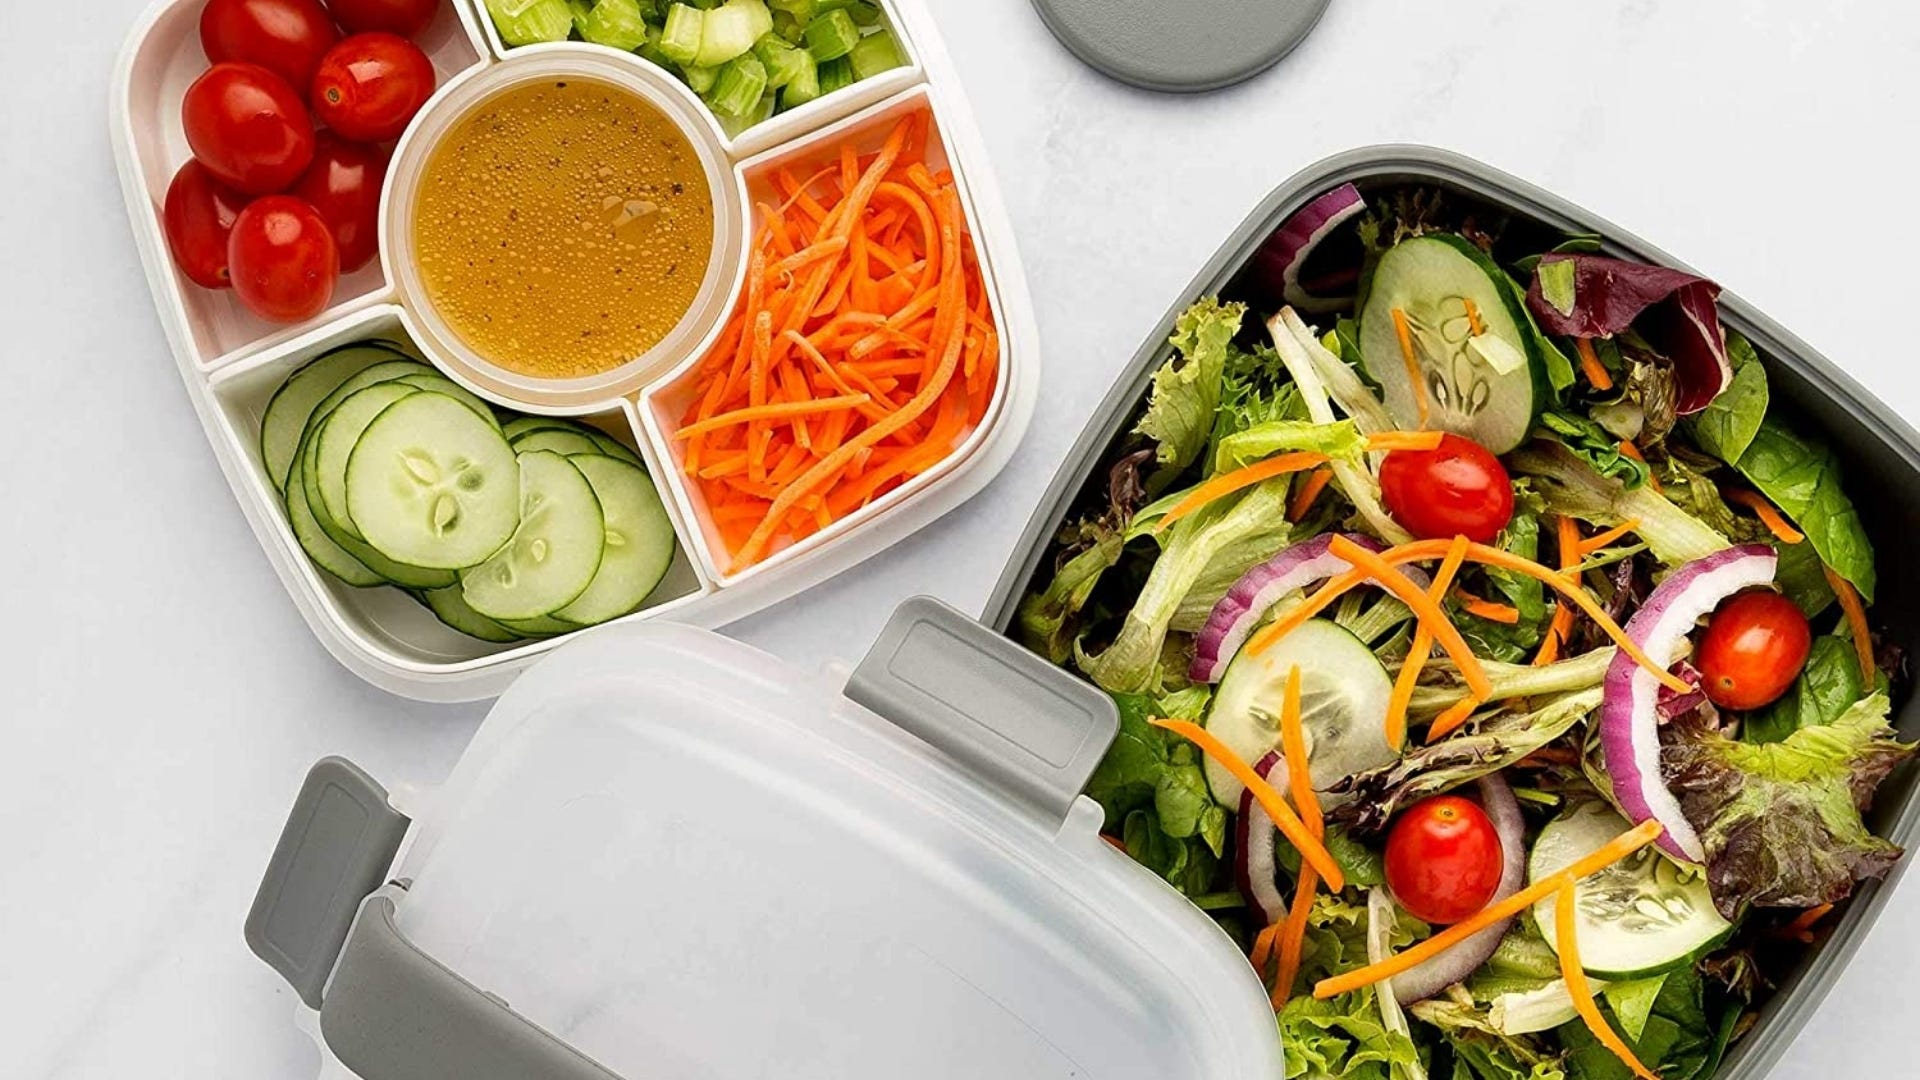 Salad container with salad in bowl and compartments of toppings